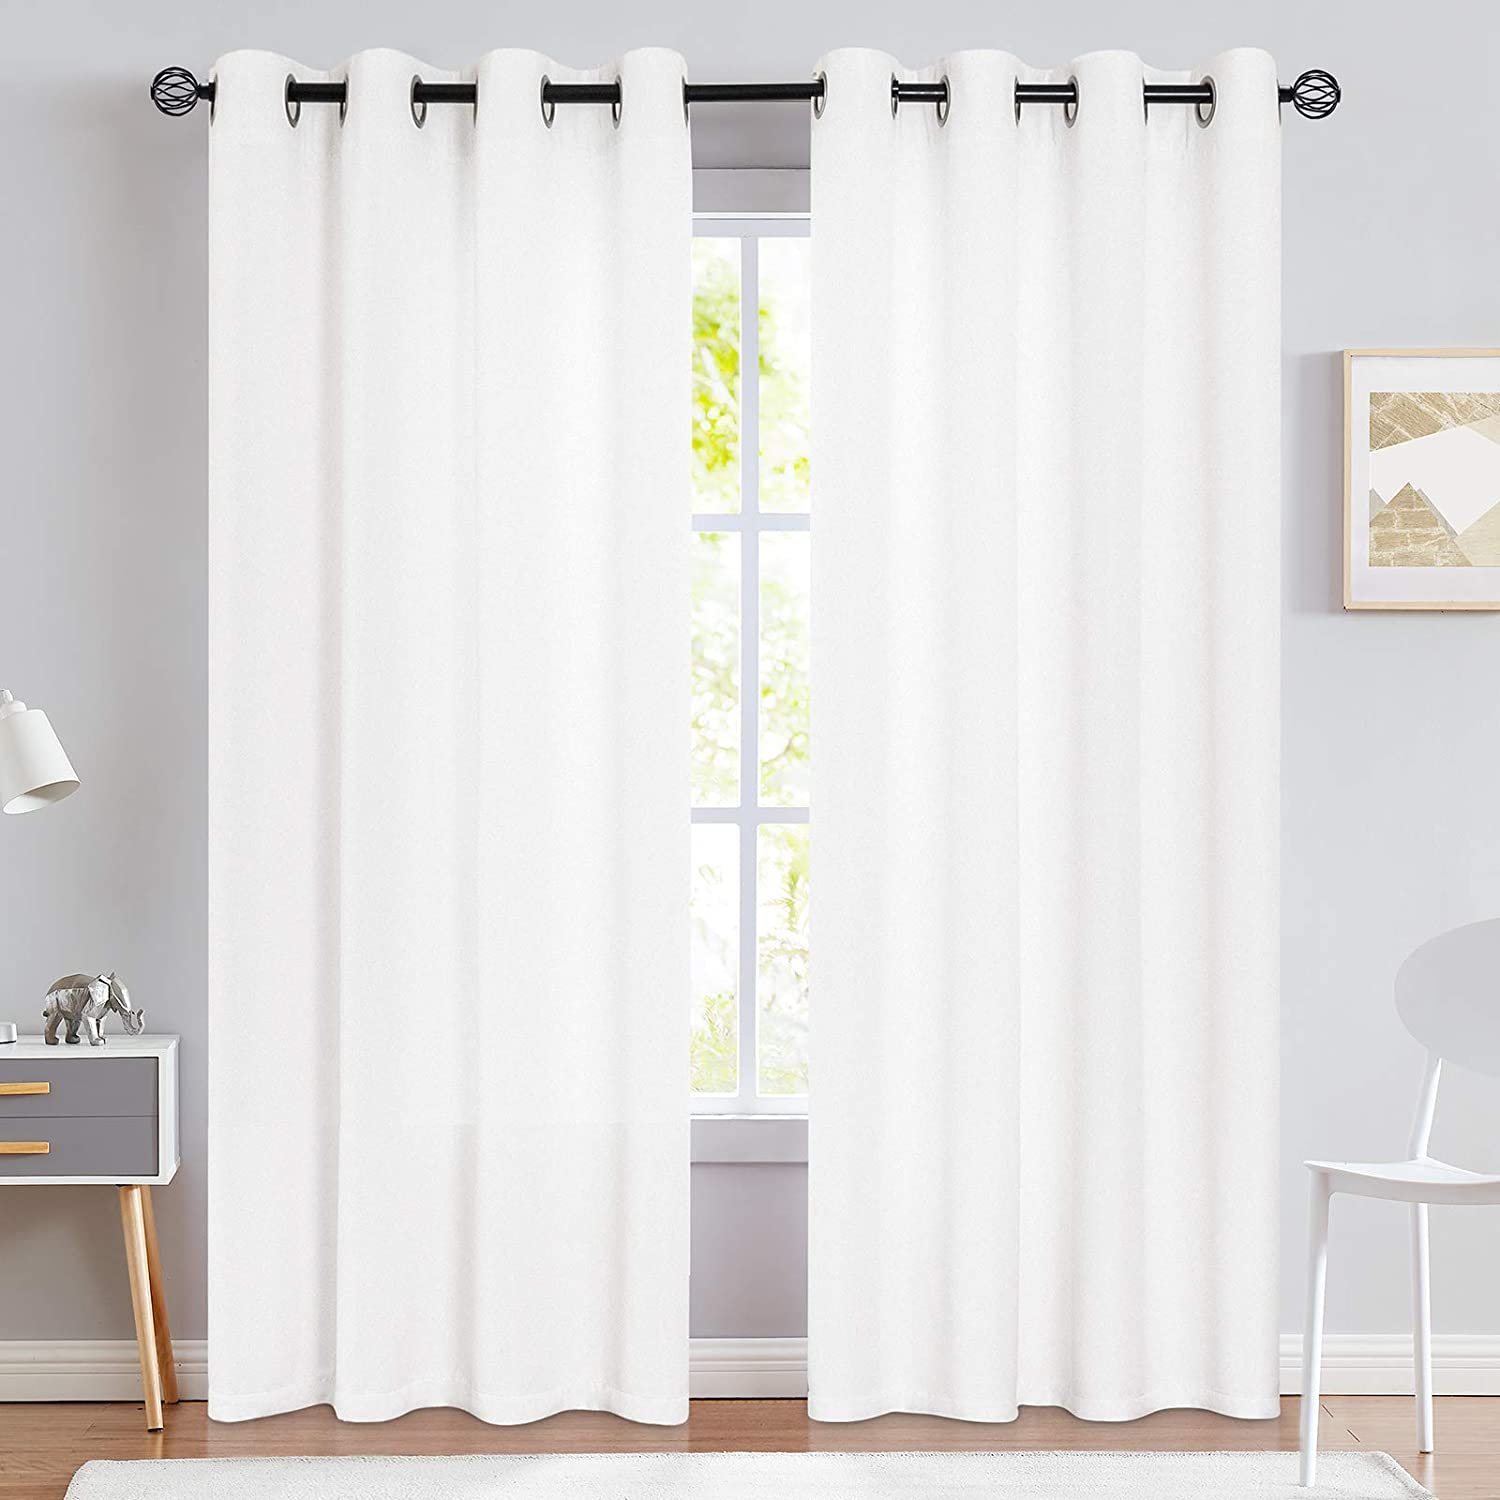 jinchan Curtains for Bedroom Heavy Light Filtering Curtain Whites 84 inches Long Lilac Linen Textured Window Drapery 1 White